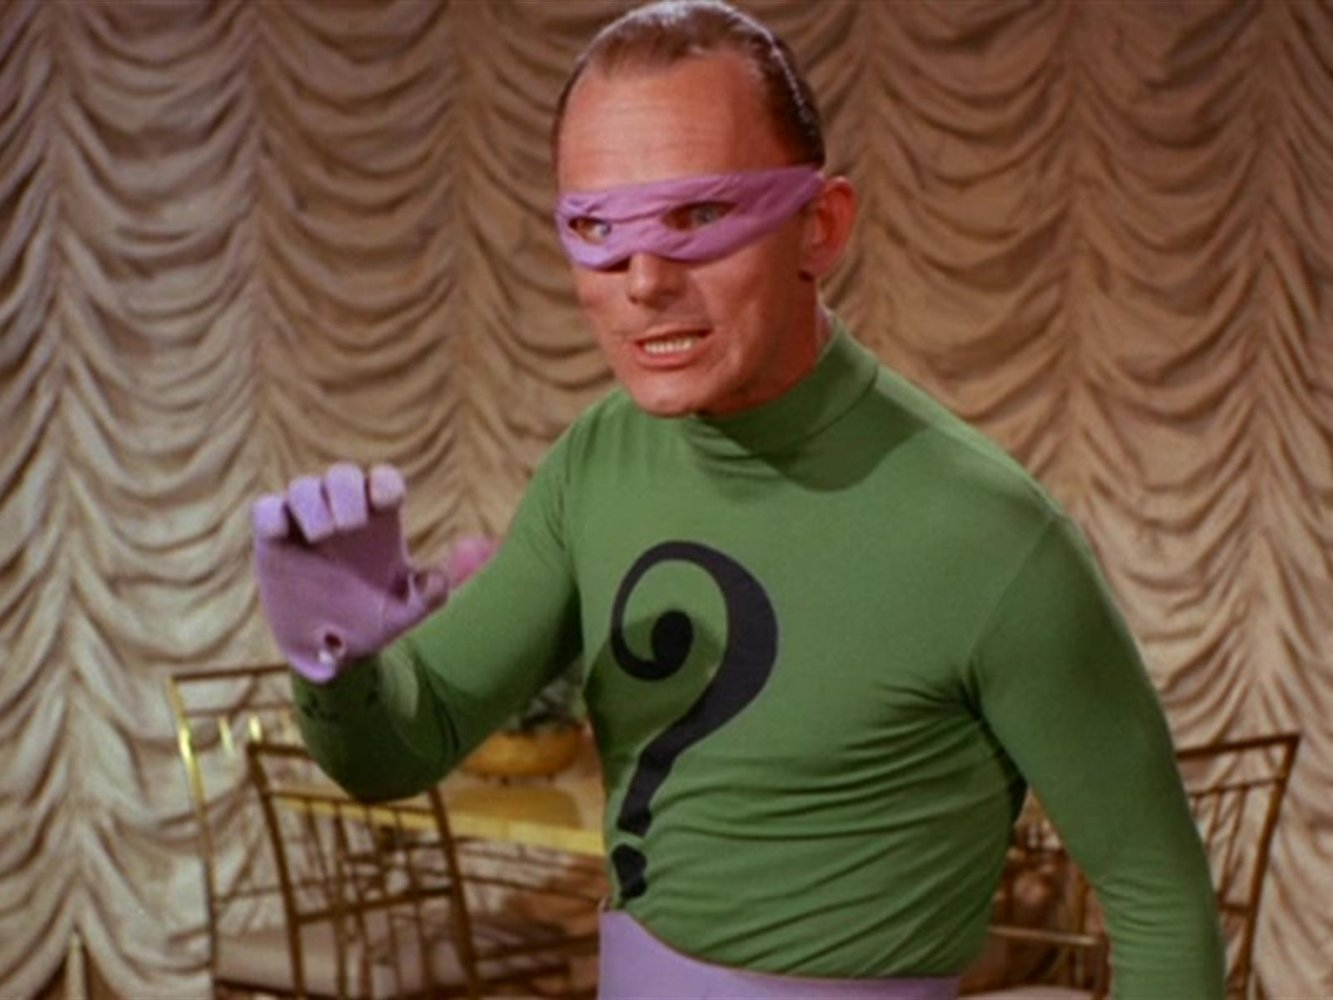 Frank Gorshin Wallpapers